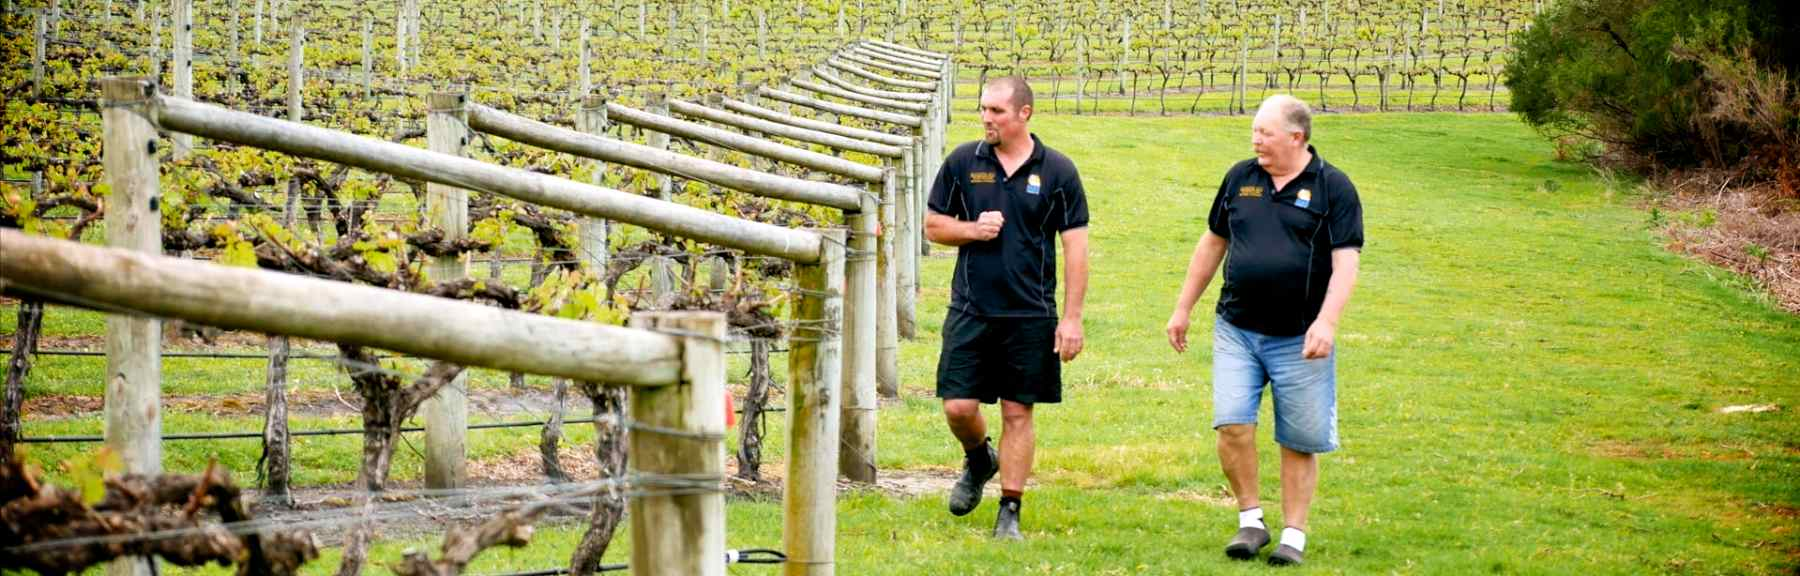 Ben and Ross Lewis walking through the vineyard in Denmark.